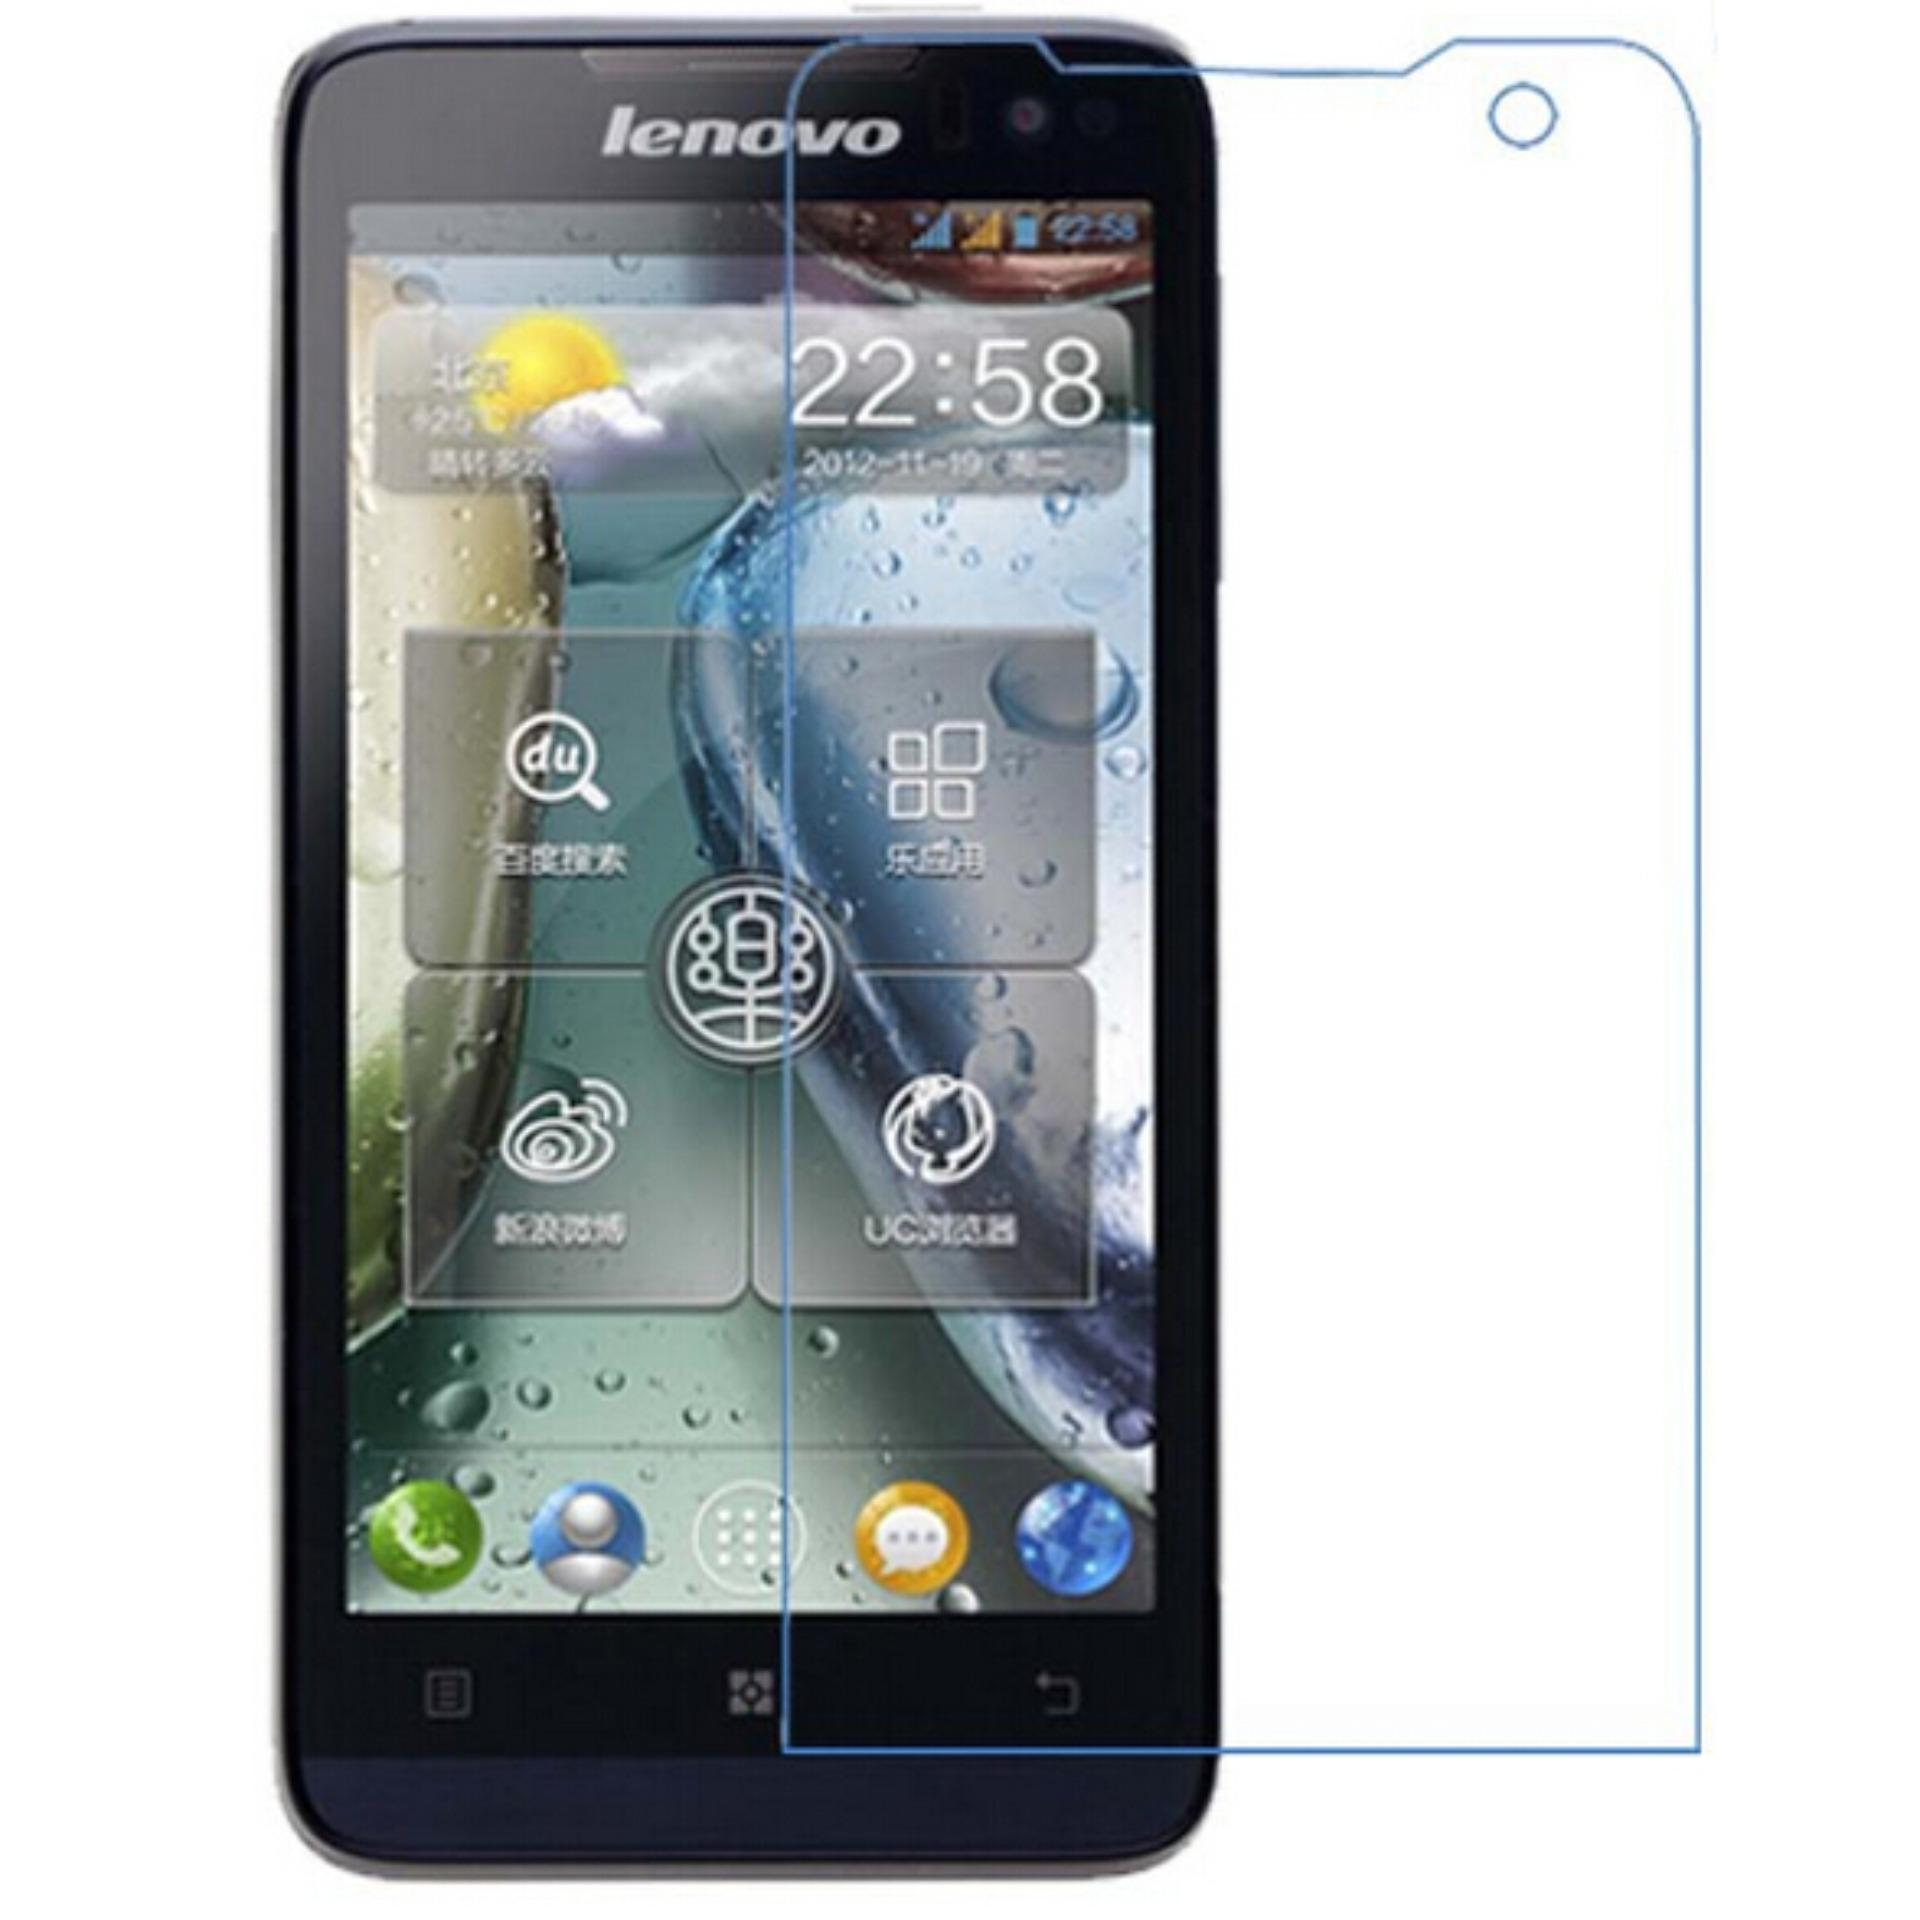 Vn Lenovo P770 Tempered Glass Screen Protector 0.32mm - Anti Crash Film - Bening